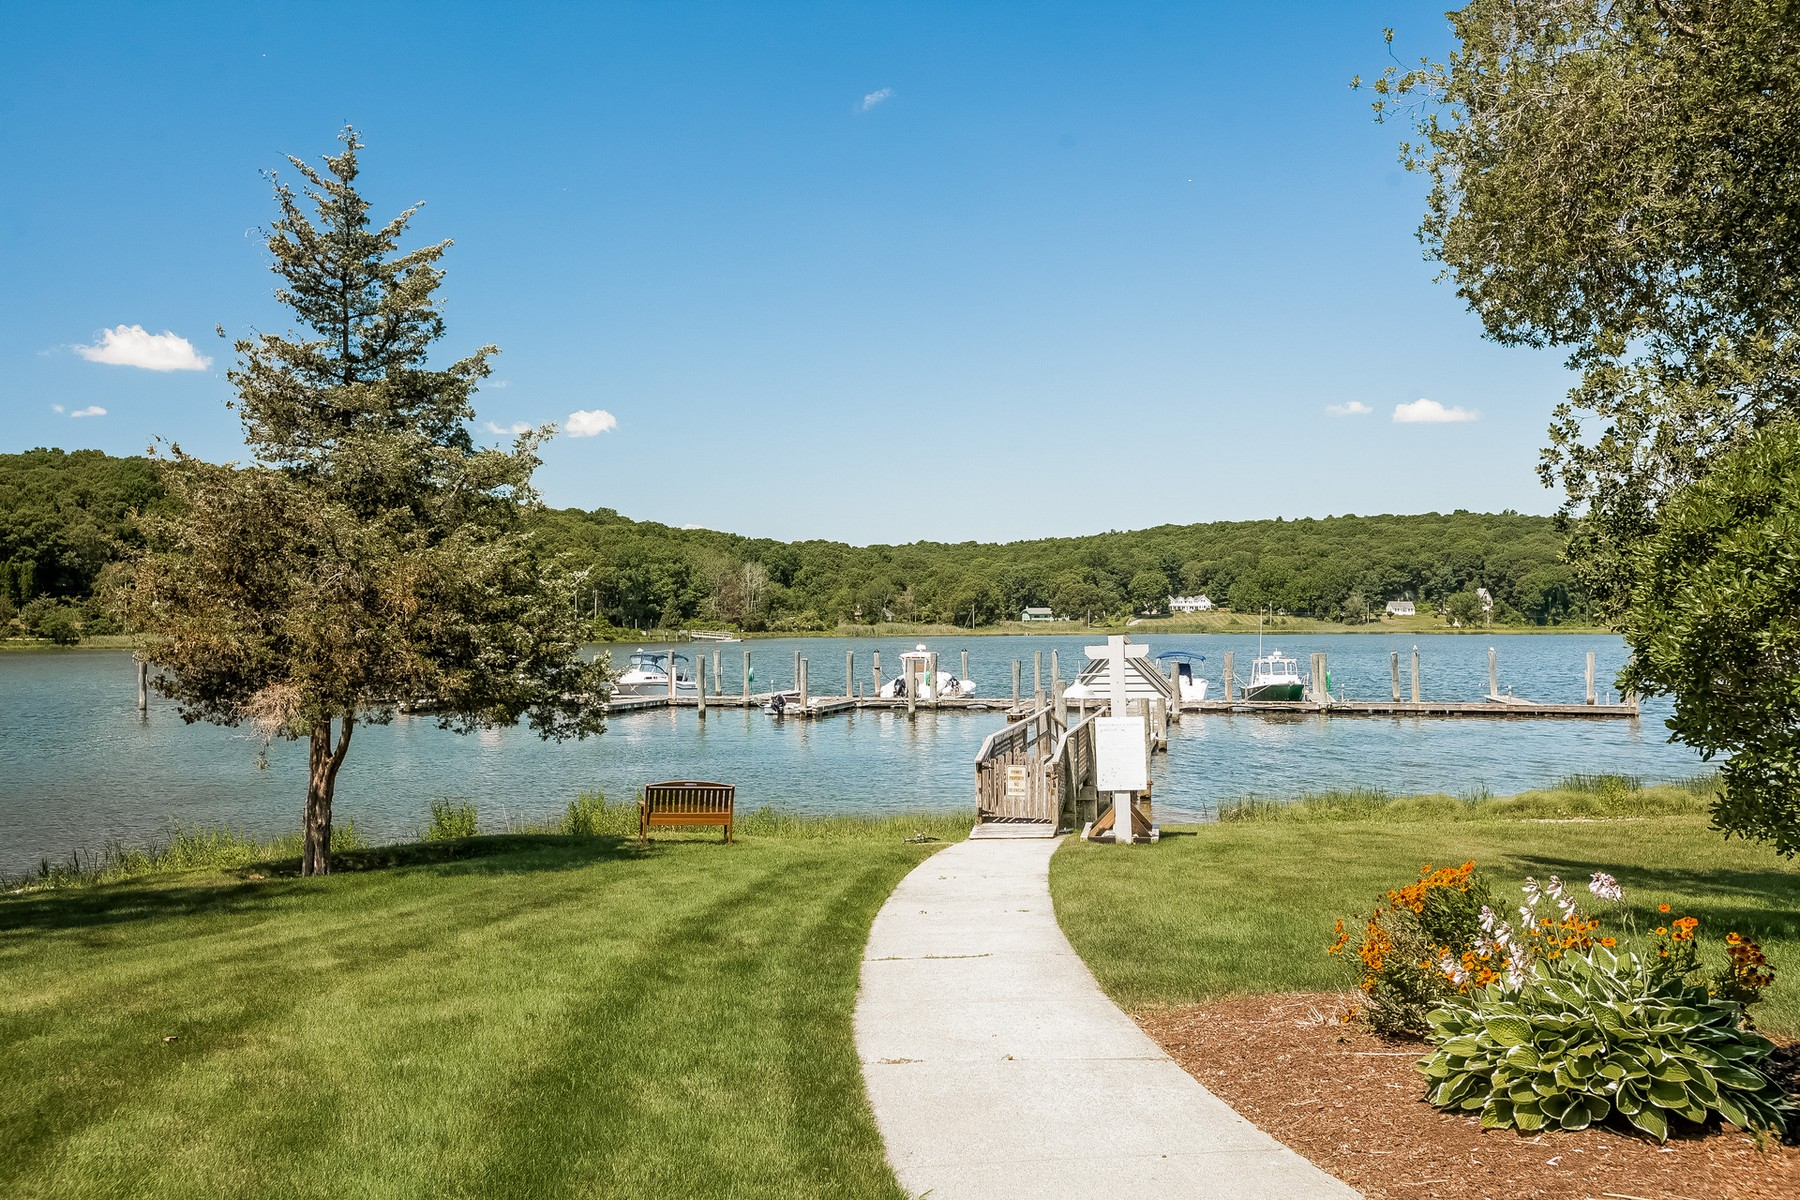 Condominium for Sale at Waterfront With Stunning Views 13 Whitehall Landing 13 Stonington, Connecticut 06355 United States